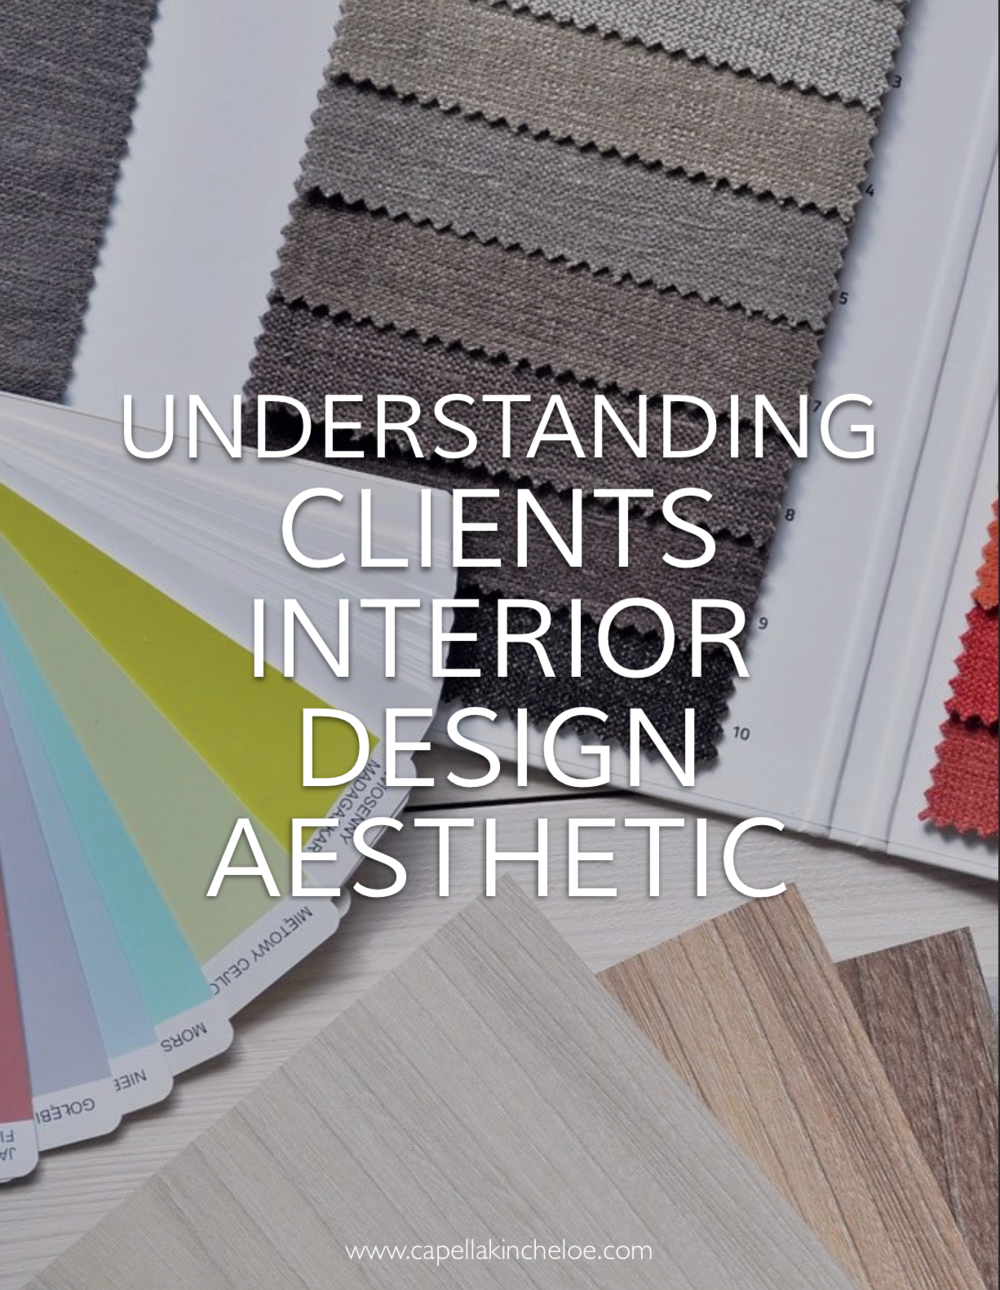 Ever wonder how to get to the very bottom of what a client wants for their home? Here are the keys to understanding a client's interior design aesthetic. #interiordesignbusiness #cktradesecrets #capellakincheloe